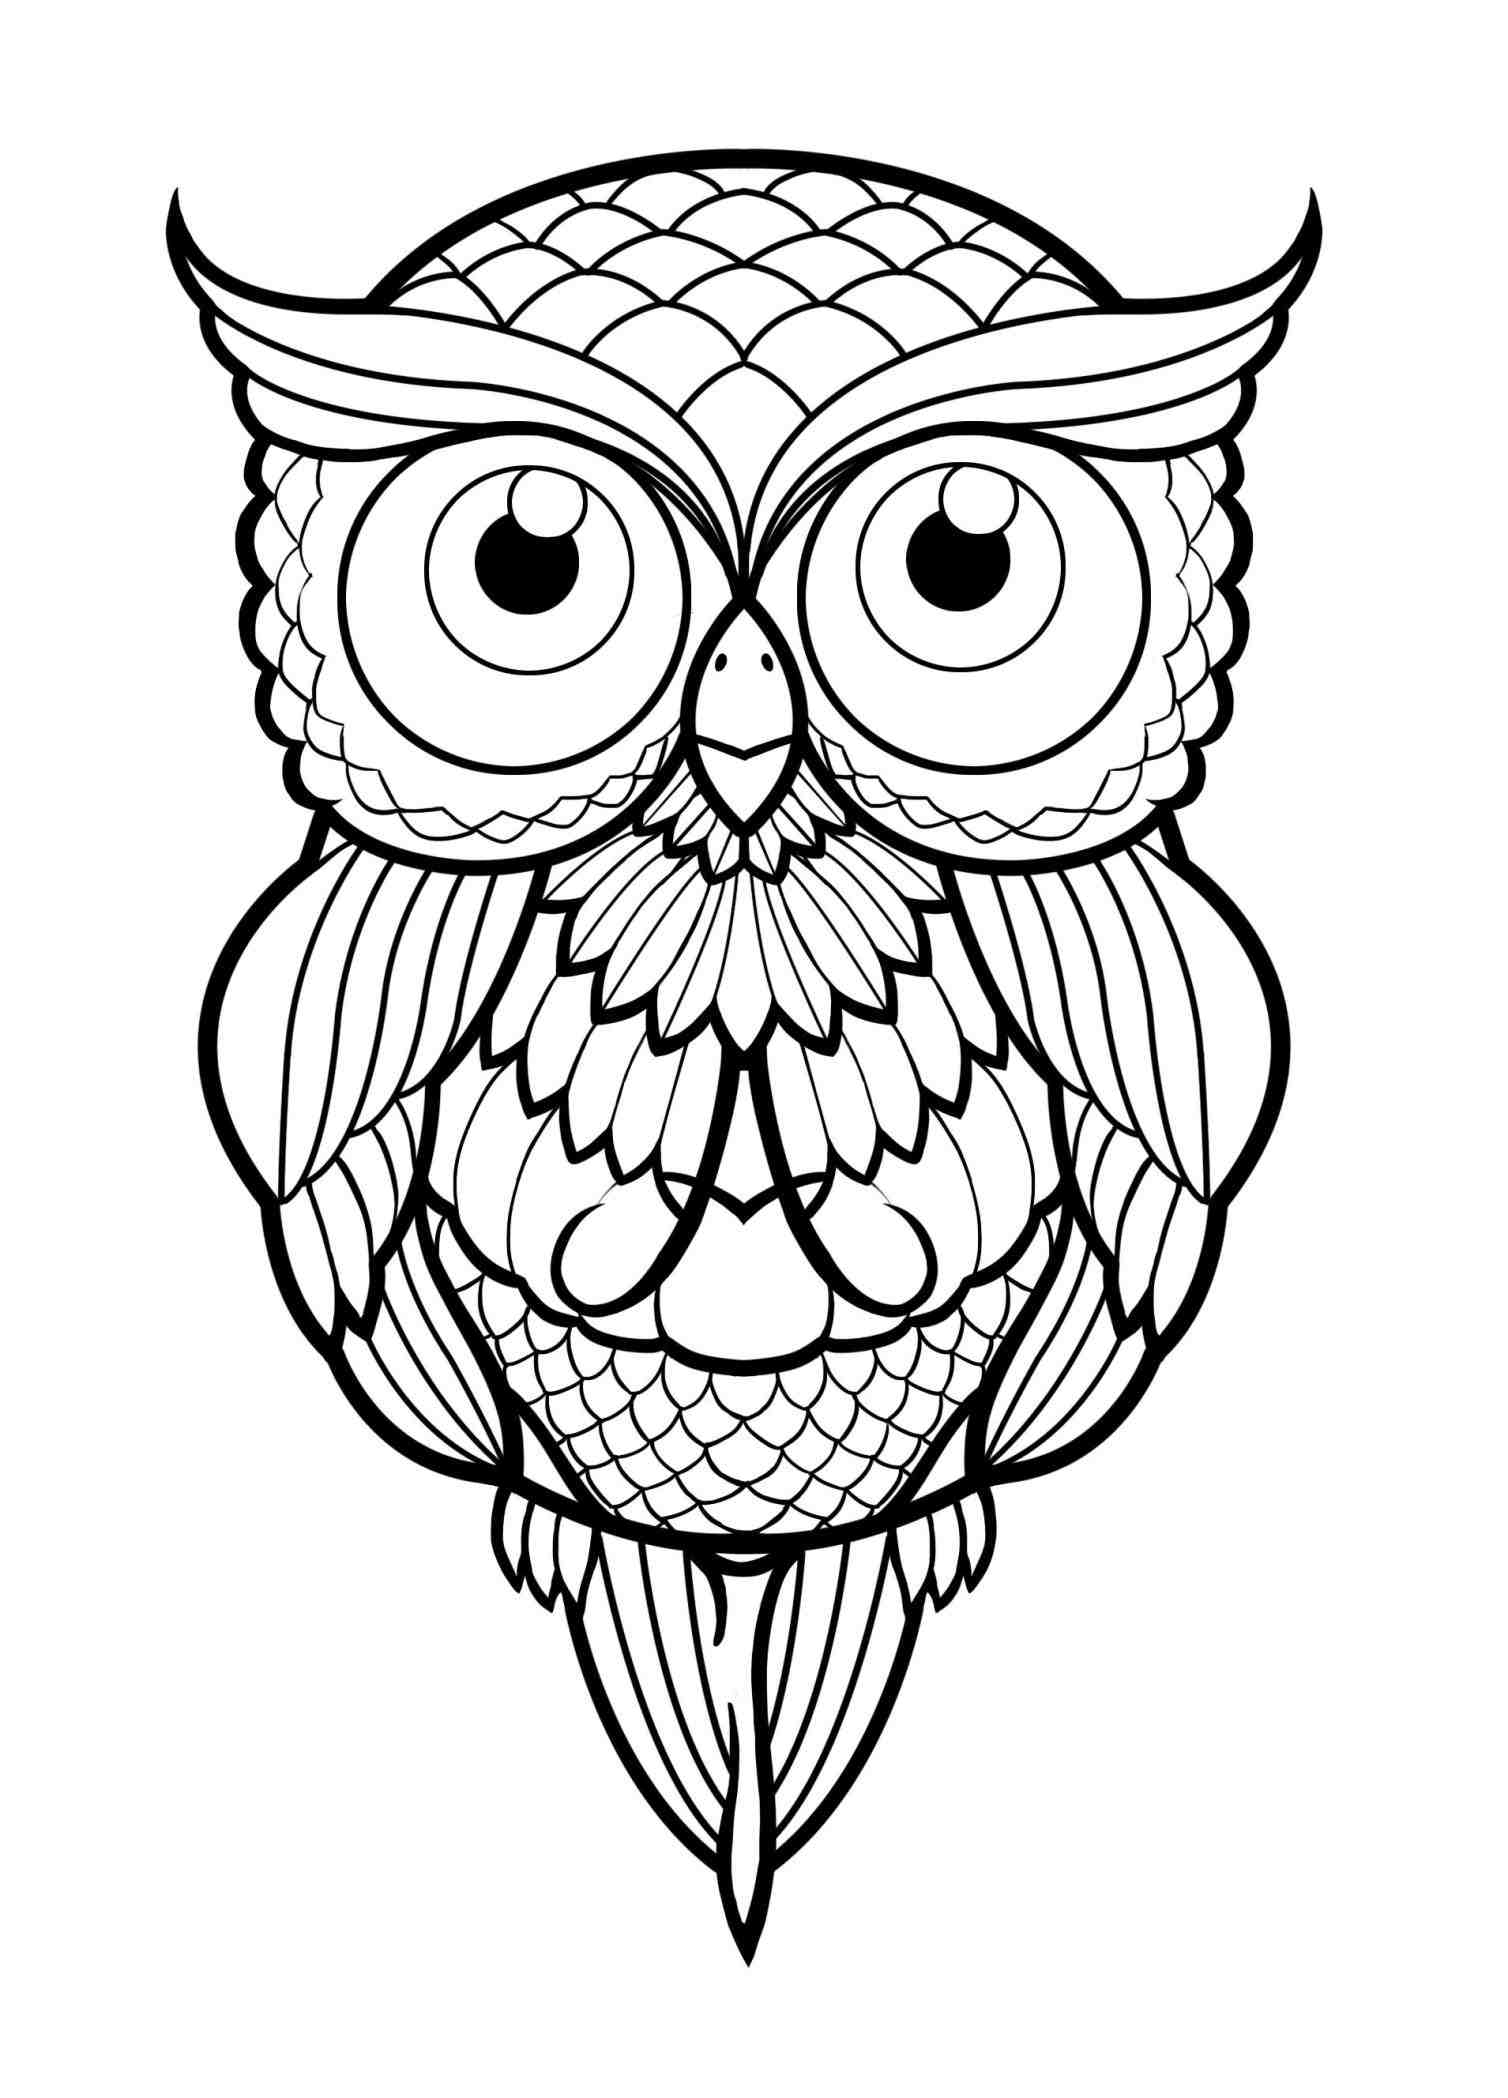 1508x2098 Easy Owl Drawings Tumblr Drawing Ideas Google Search Crafts Two Do